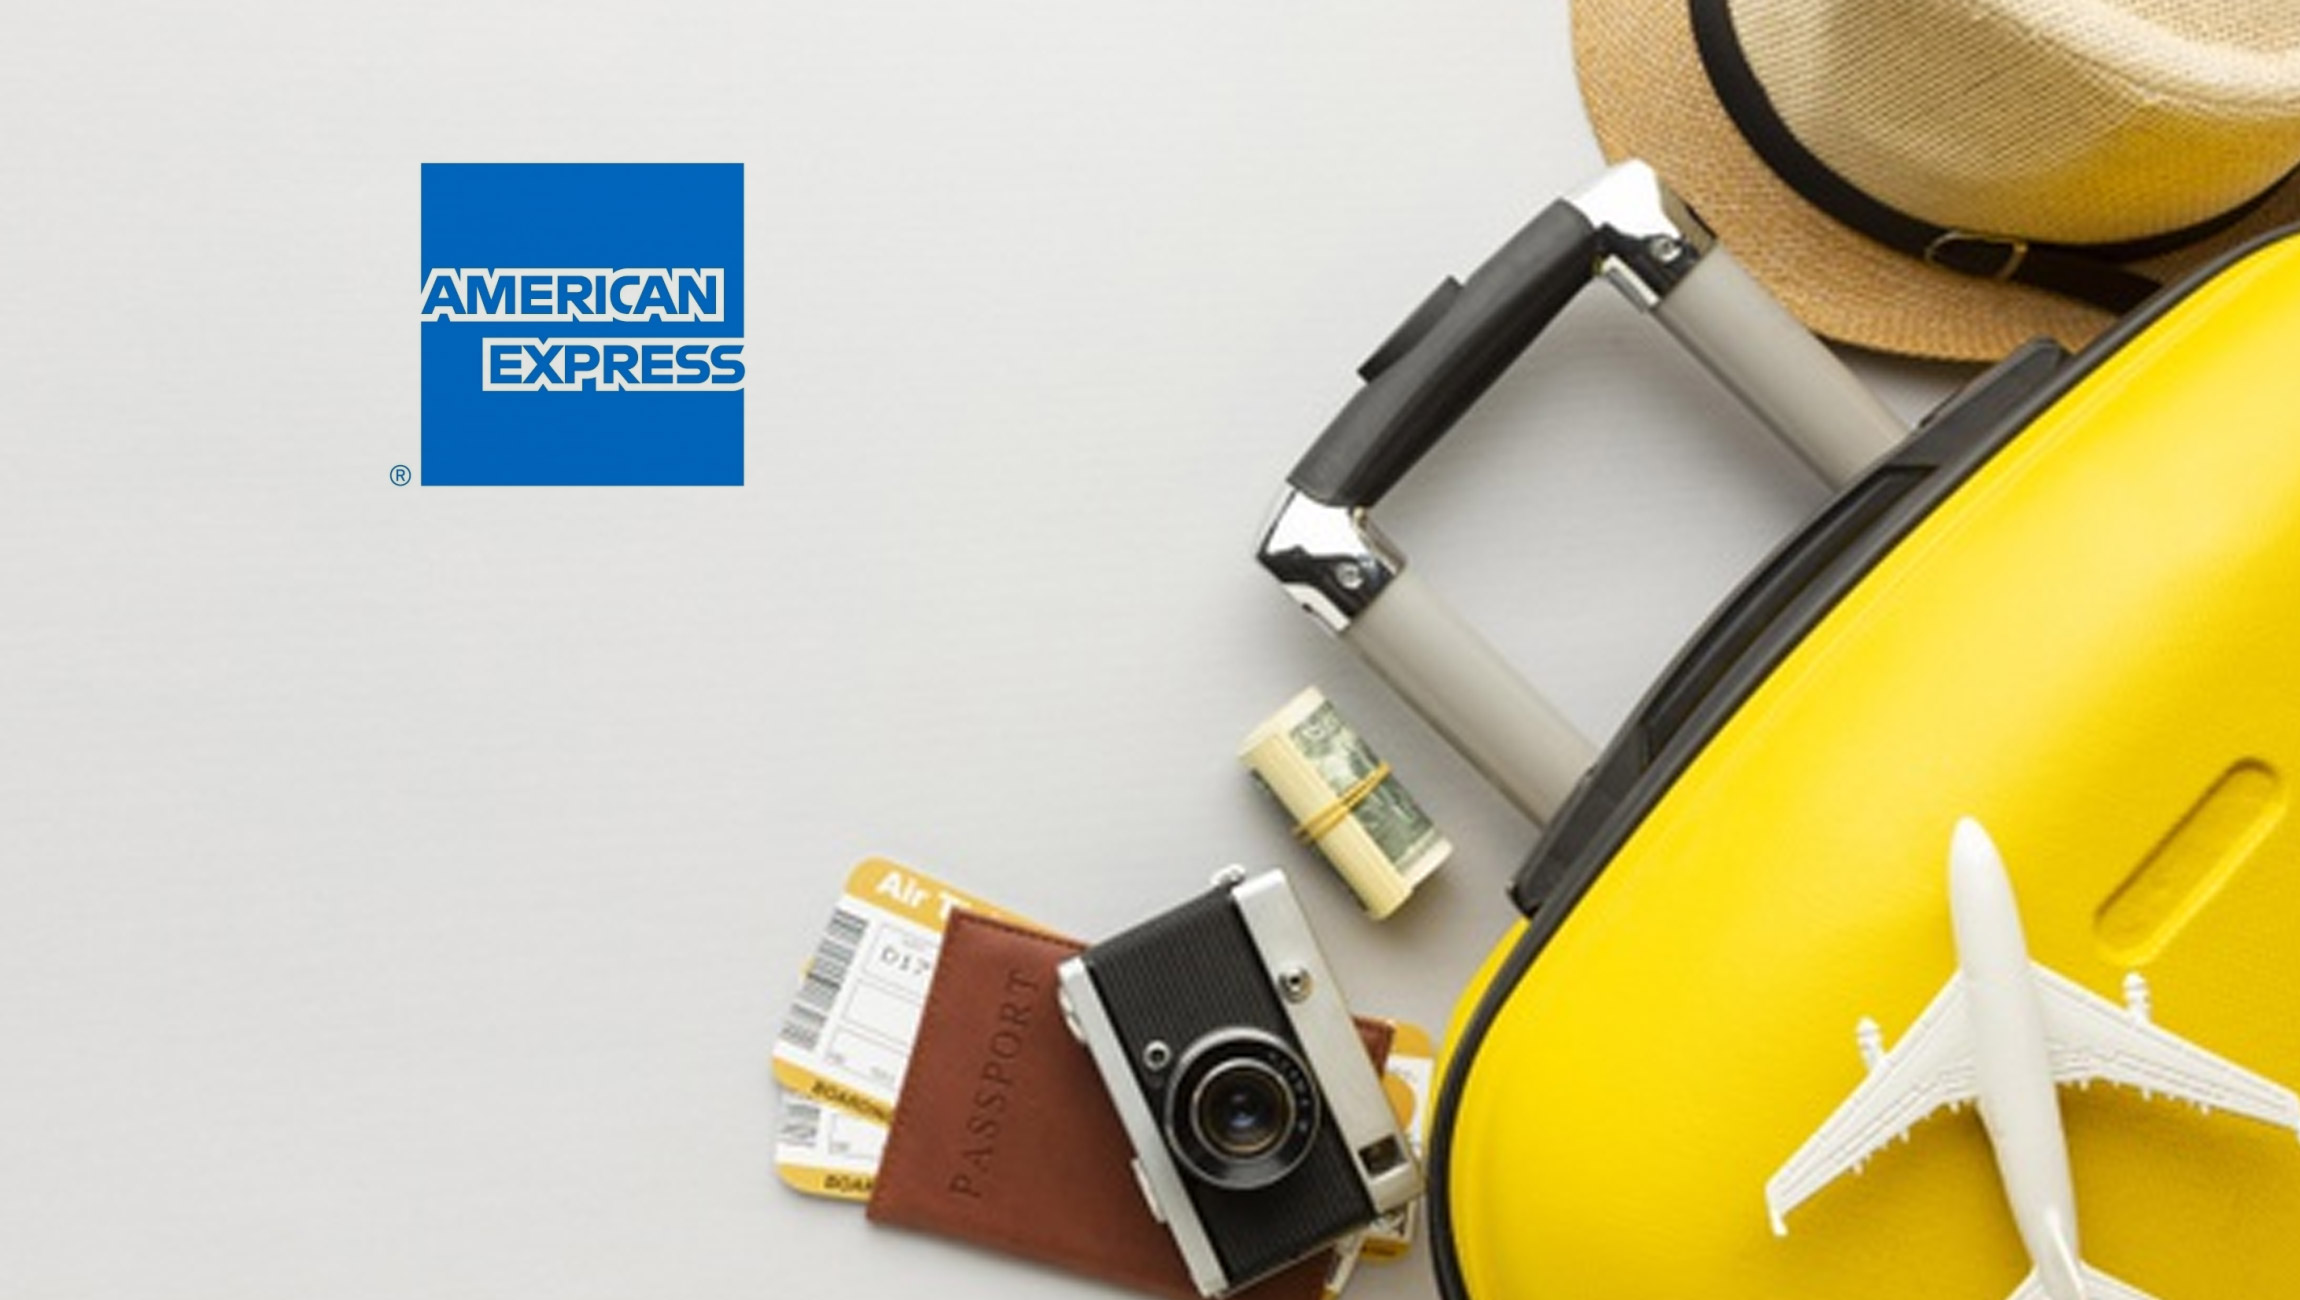 American Express Launches 2021 Global Travel Trends Report 6